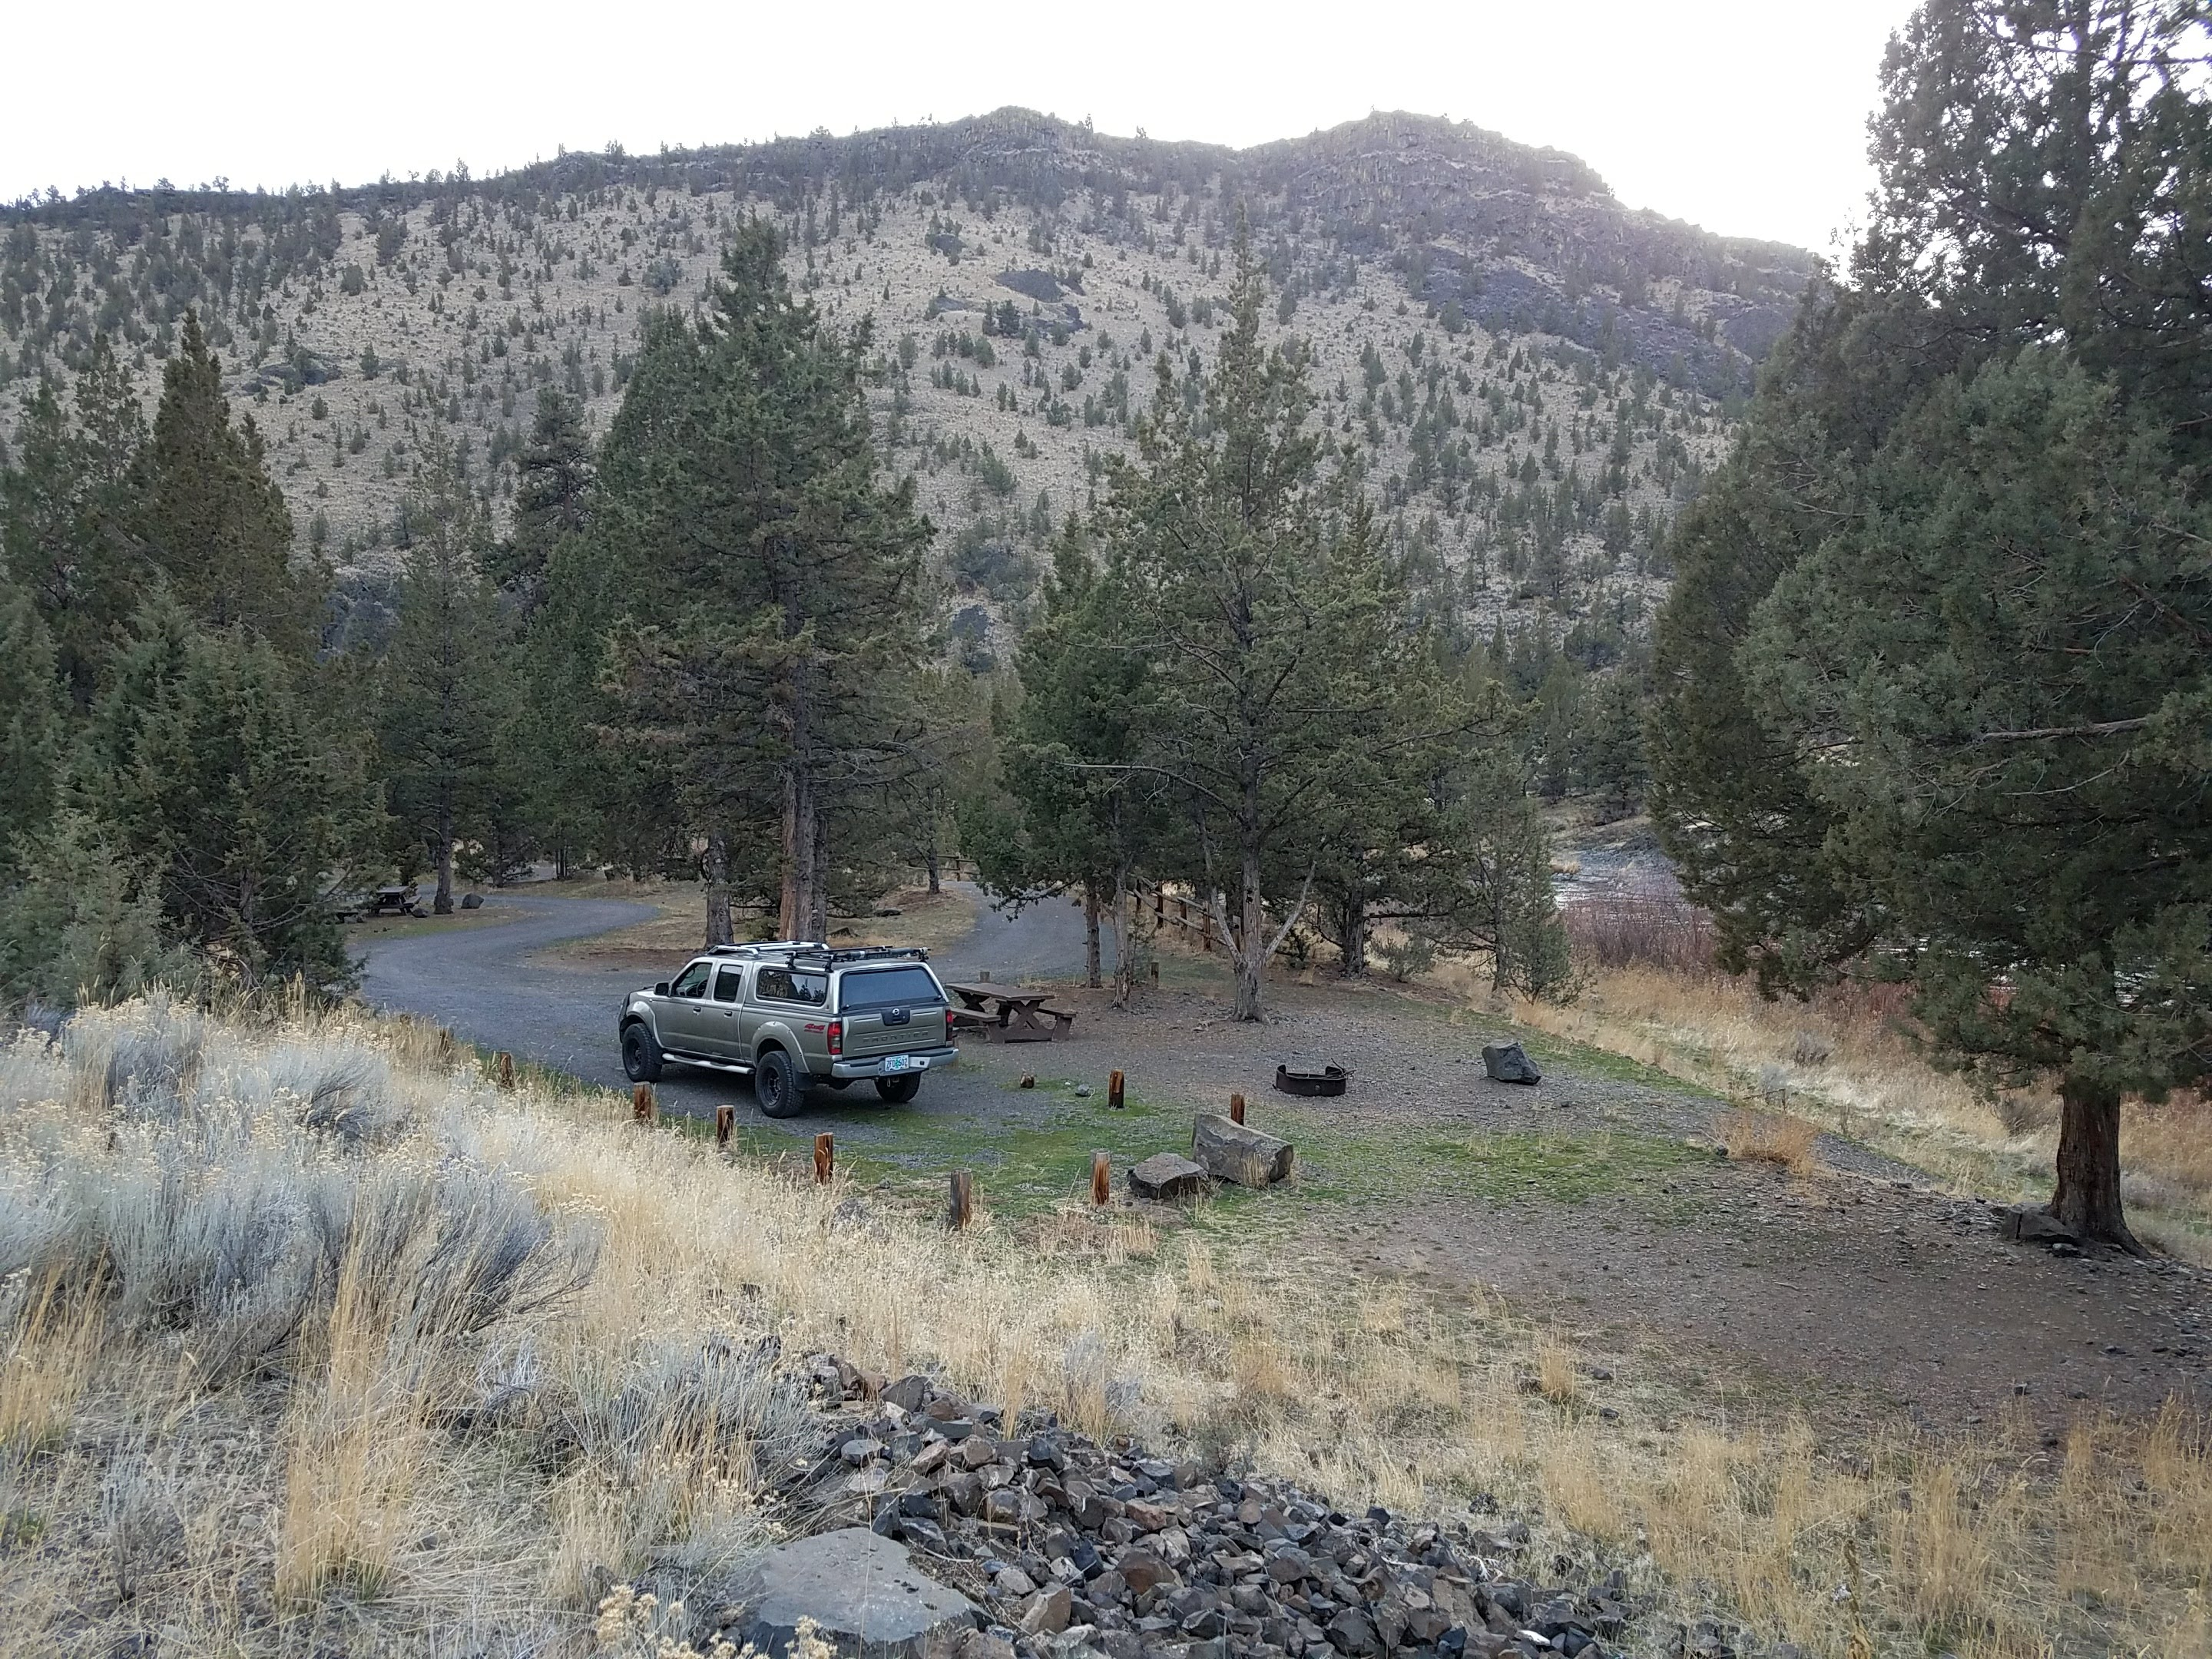 Campsite at Lone Pine Campground